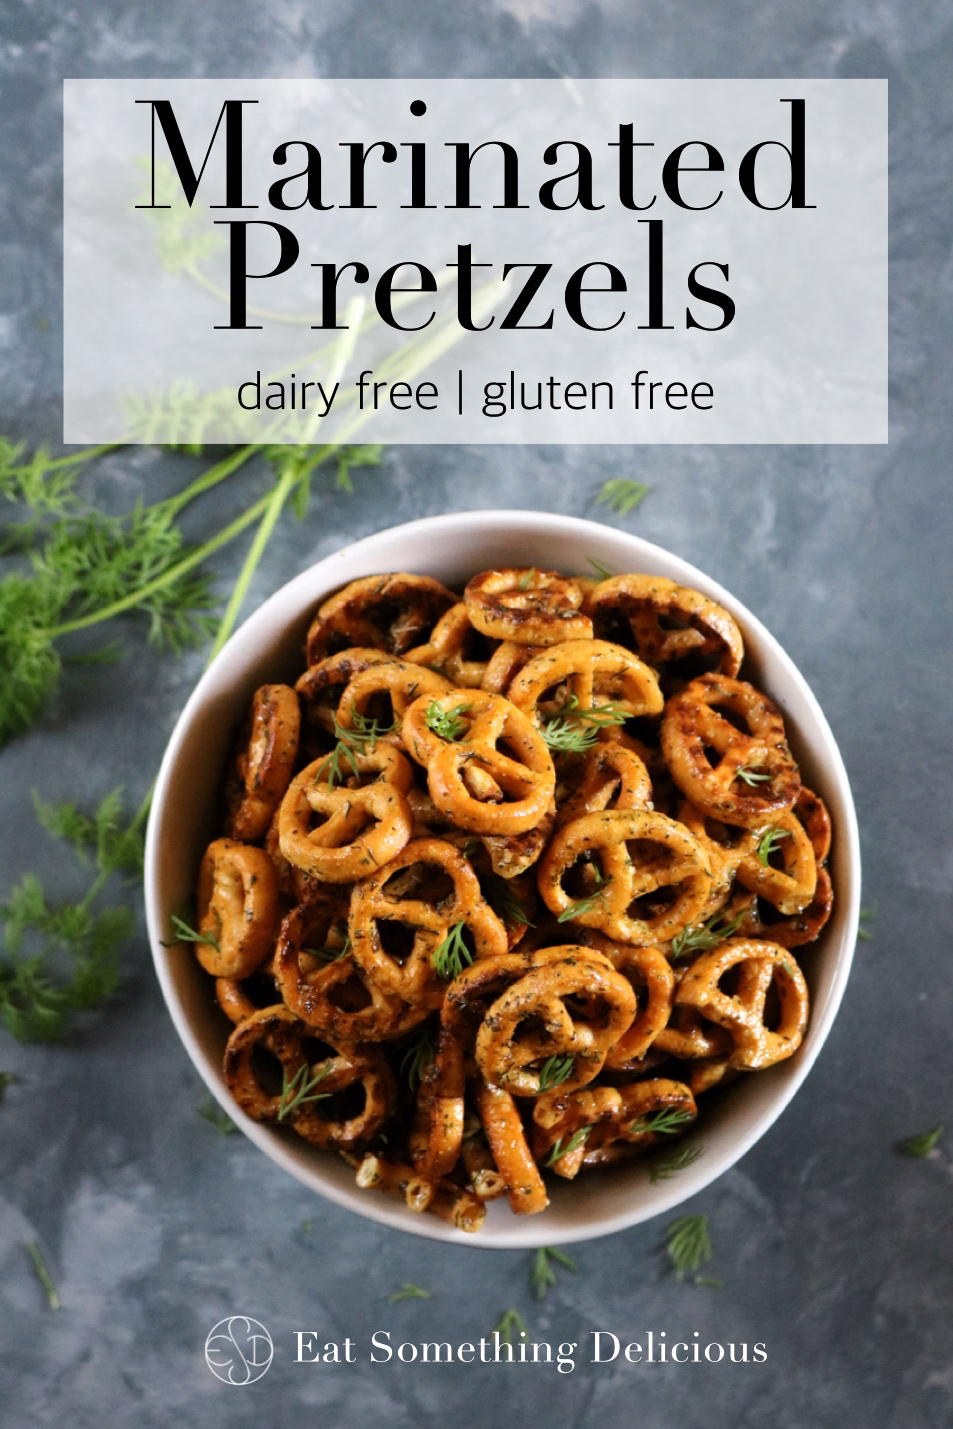 Marinated Pretzels | Ranch marinated crunchy pretzels without the gluten or dairy but still packed with flavor. These make a great party snack and are so addicting! | eatsomethingdelicious.com